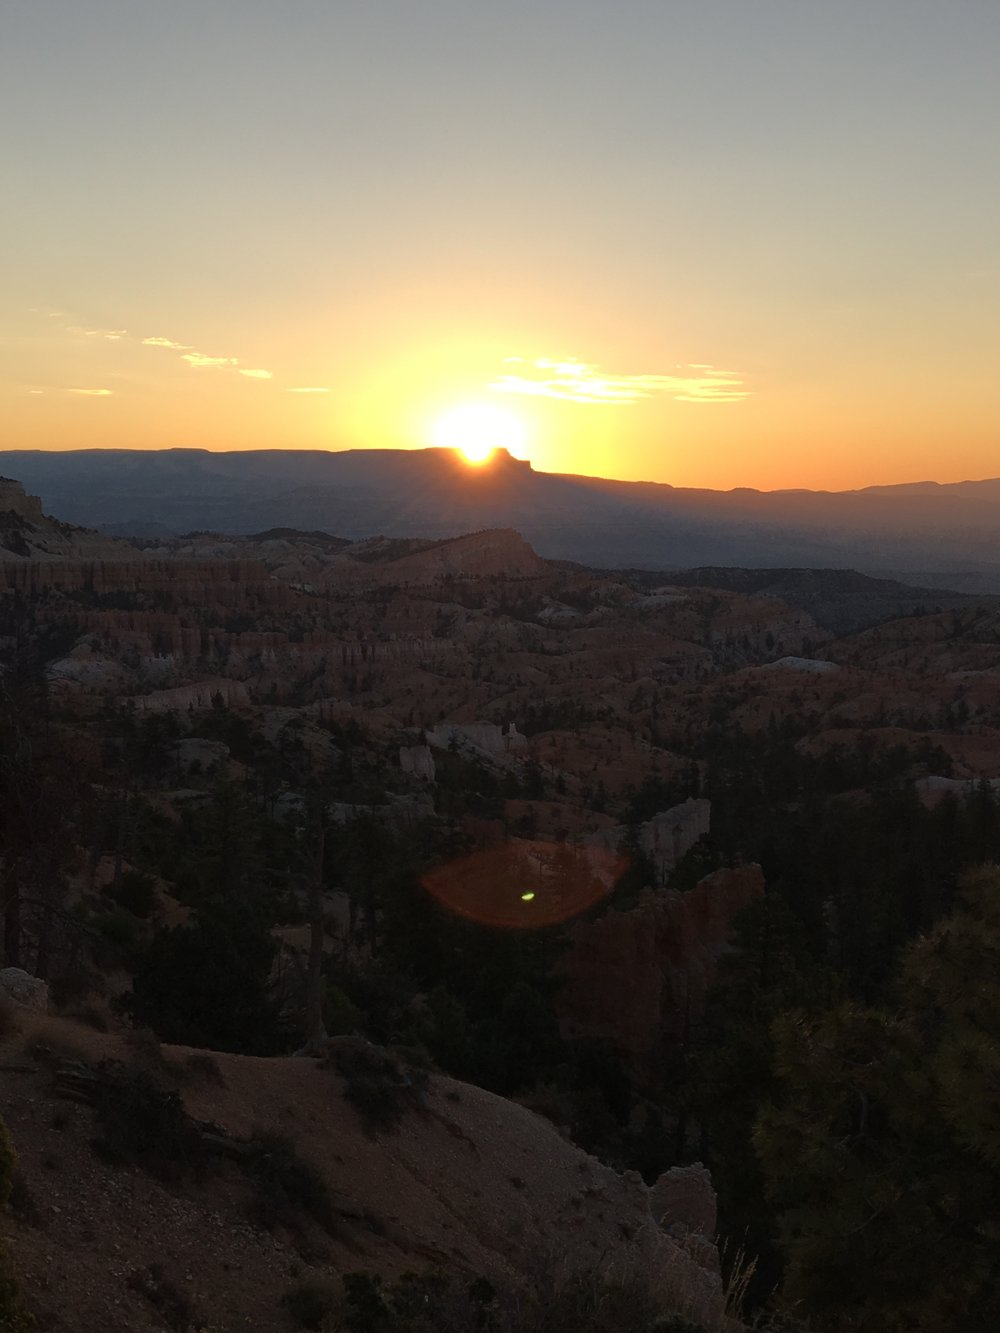 You can see why they call it Sunrise Point, right?